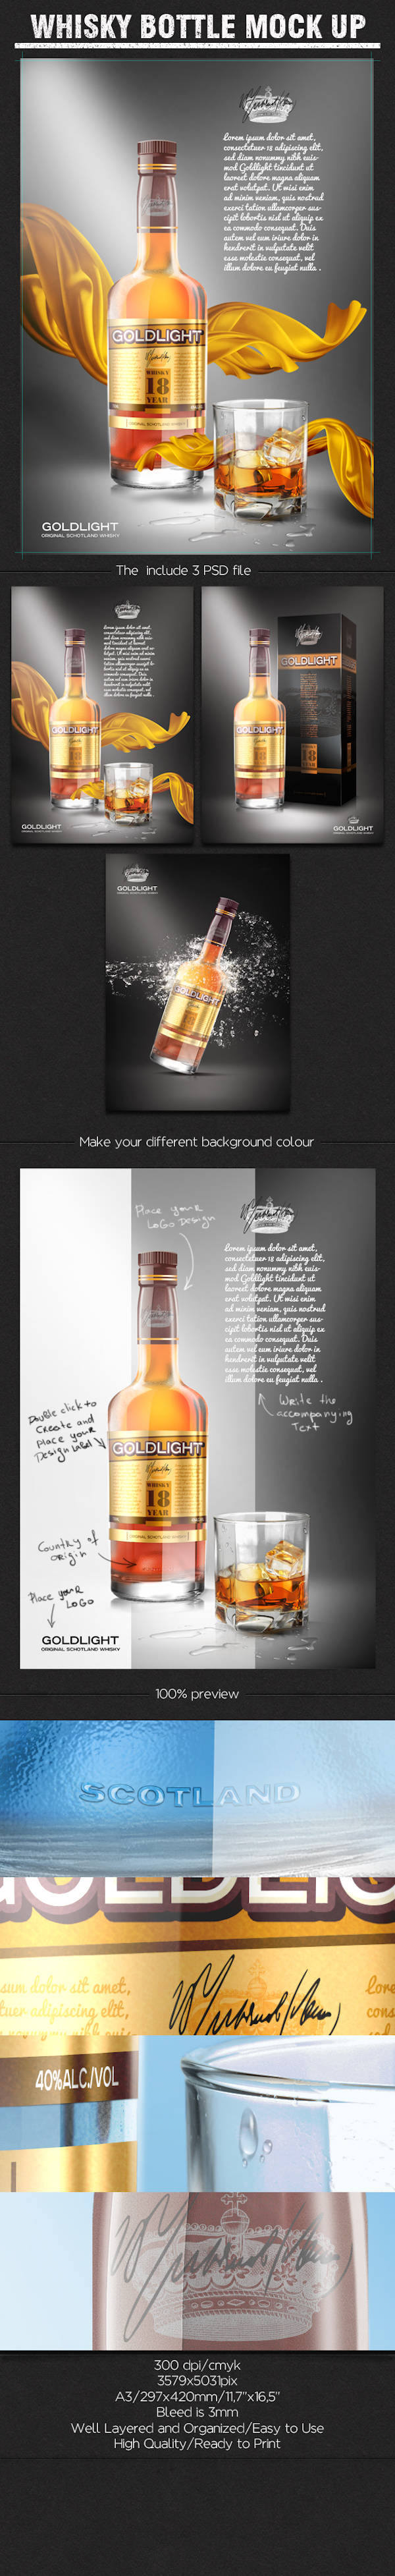 WHISKY BOTTLE MOCK-UP